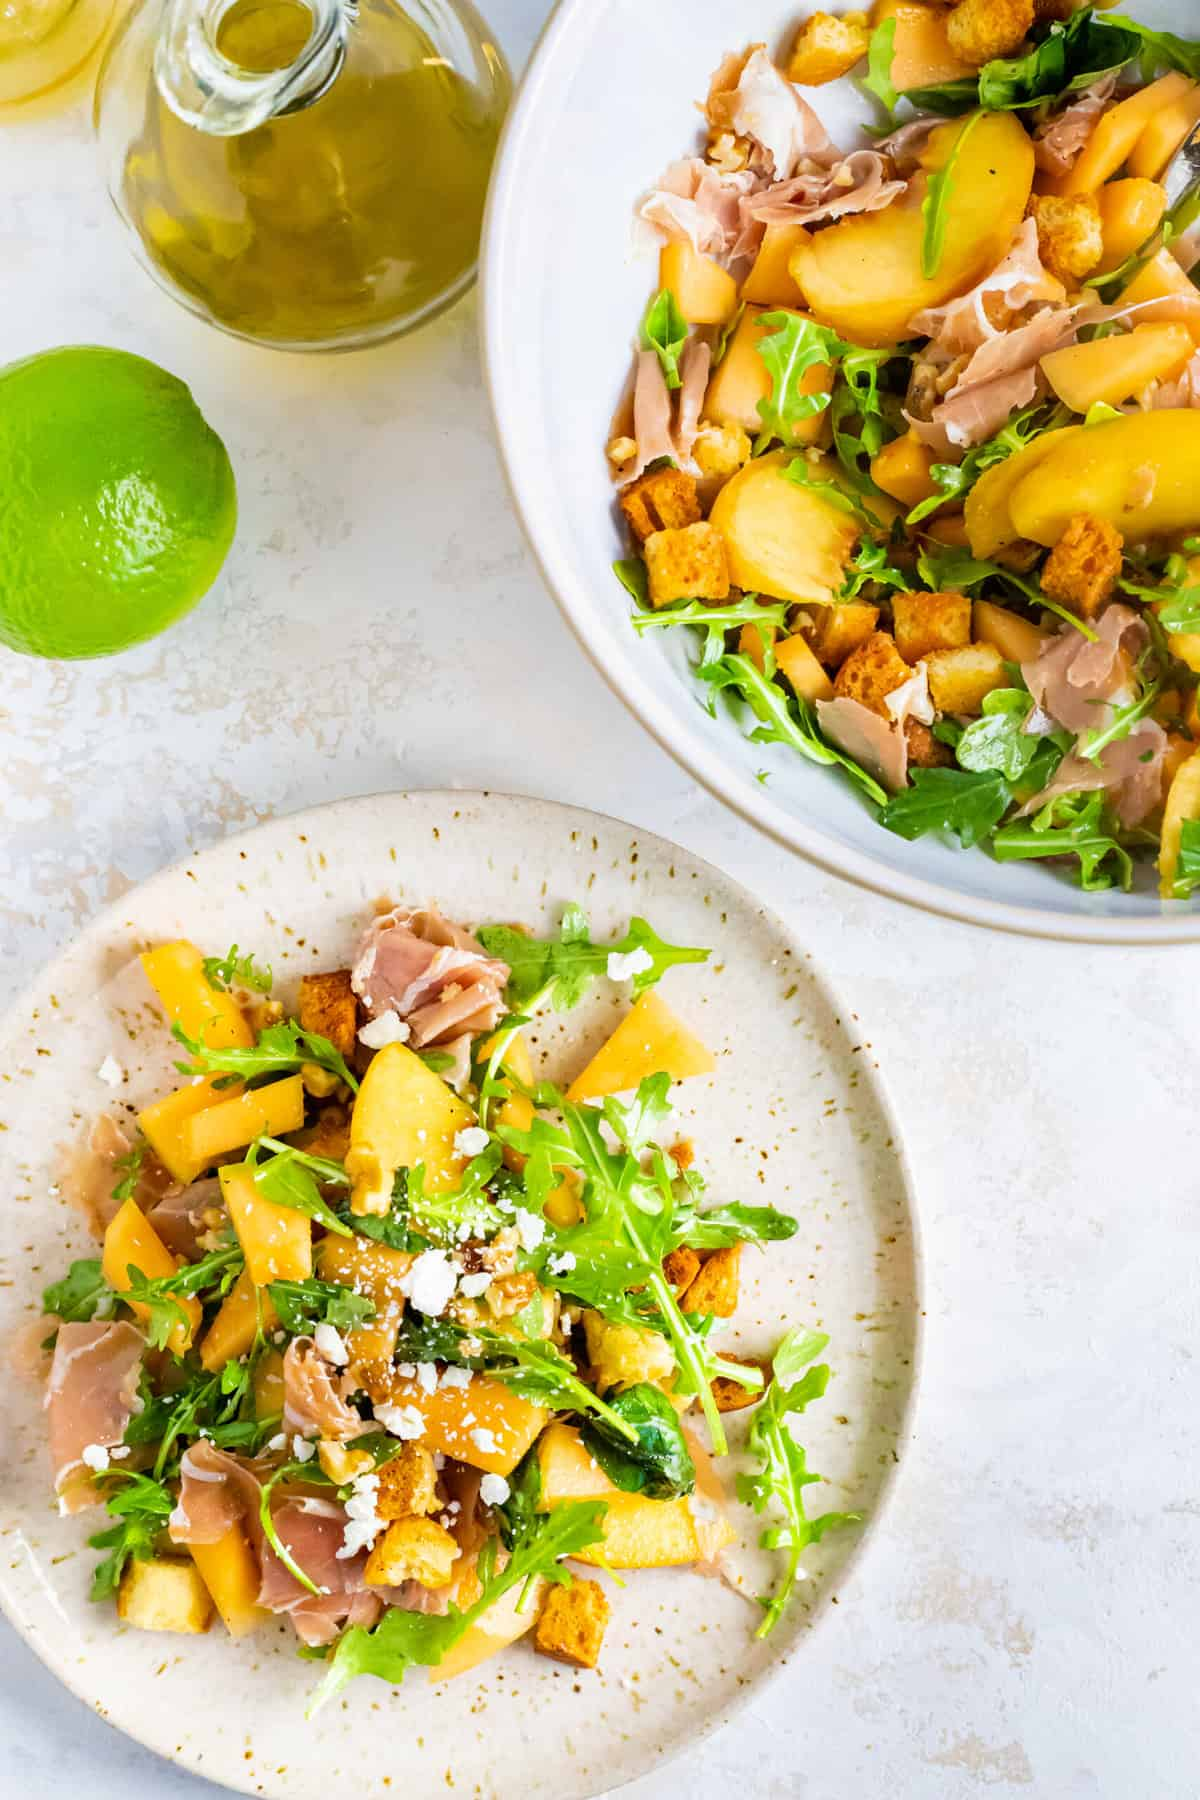 a white plate piled high with a fresh summer salad of prosciutto, peaches, melon, walnuts, and arugula